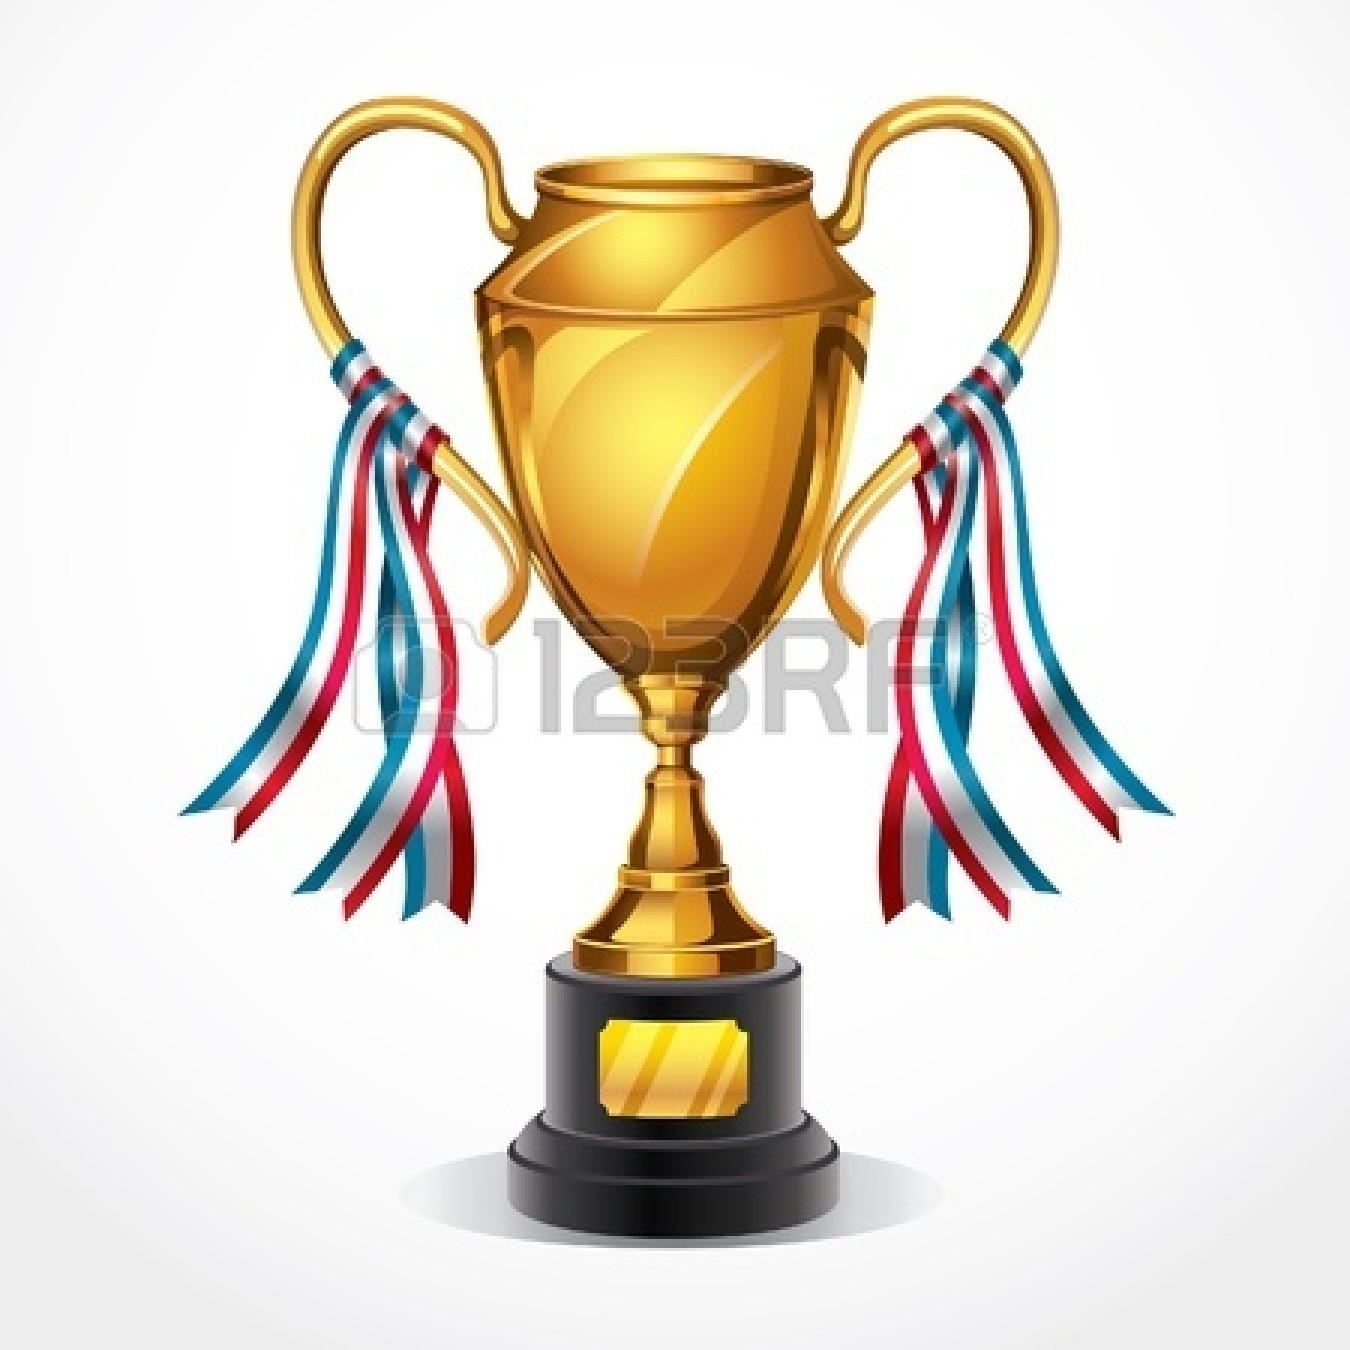 hight resolution of 1350x1350 winning clipart championship trophy